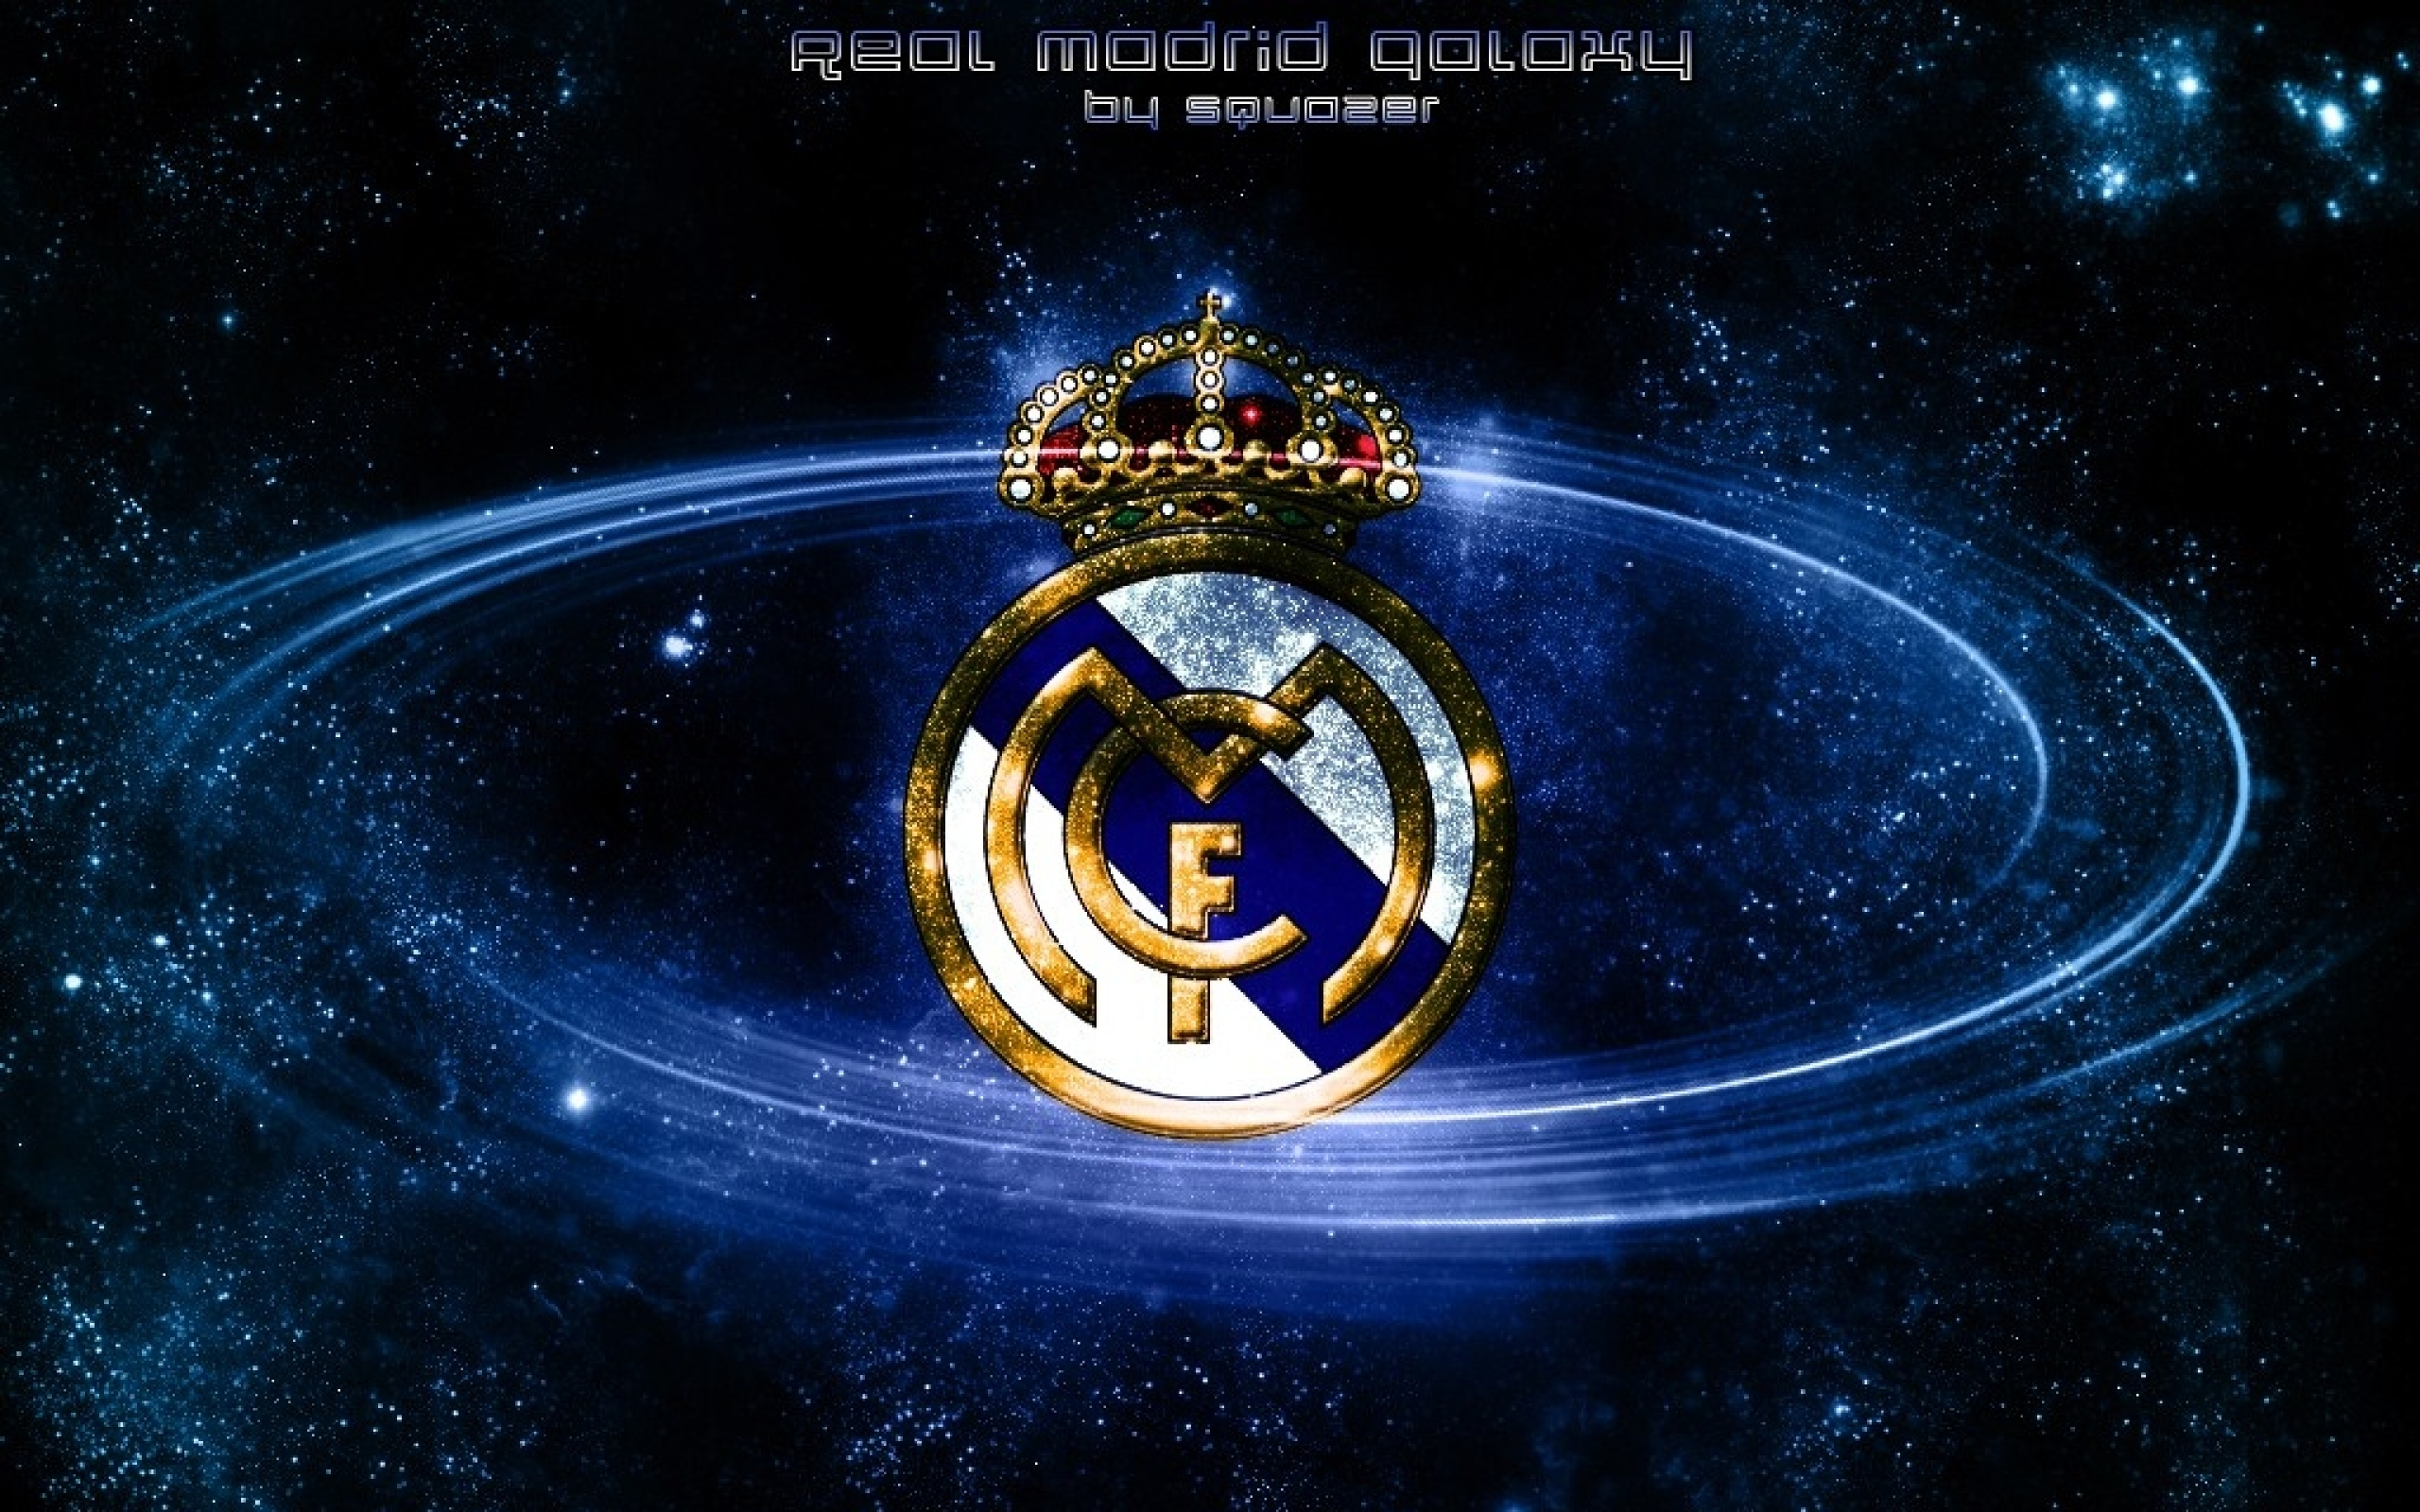 Real Madrid D Awesome Cool Real Madrid Wallpaper 12609 Wallpaper